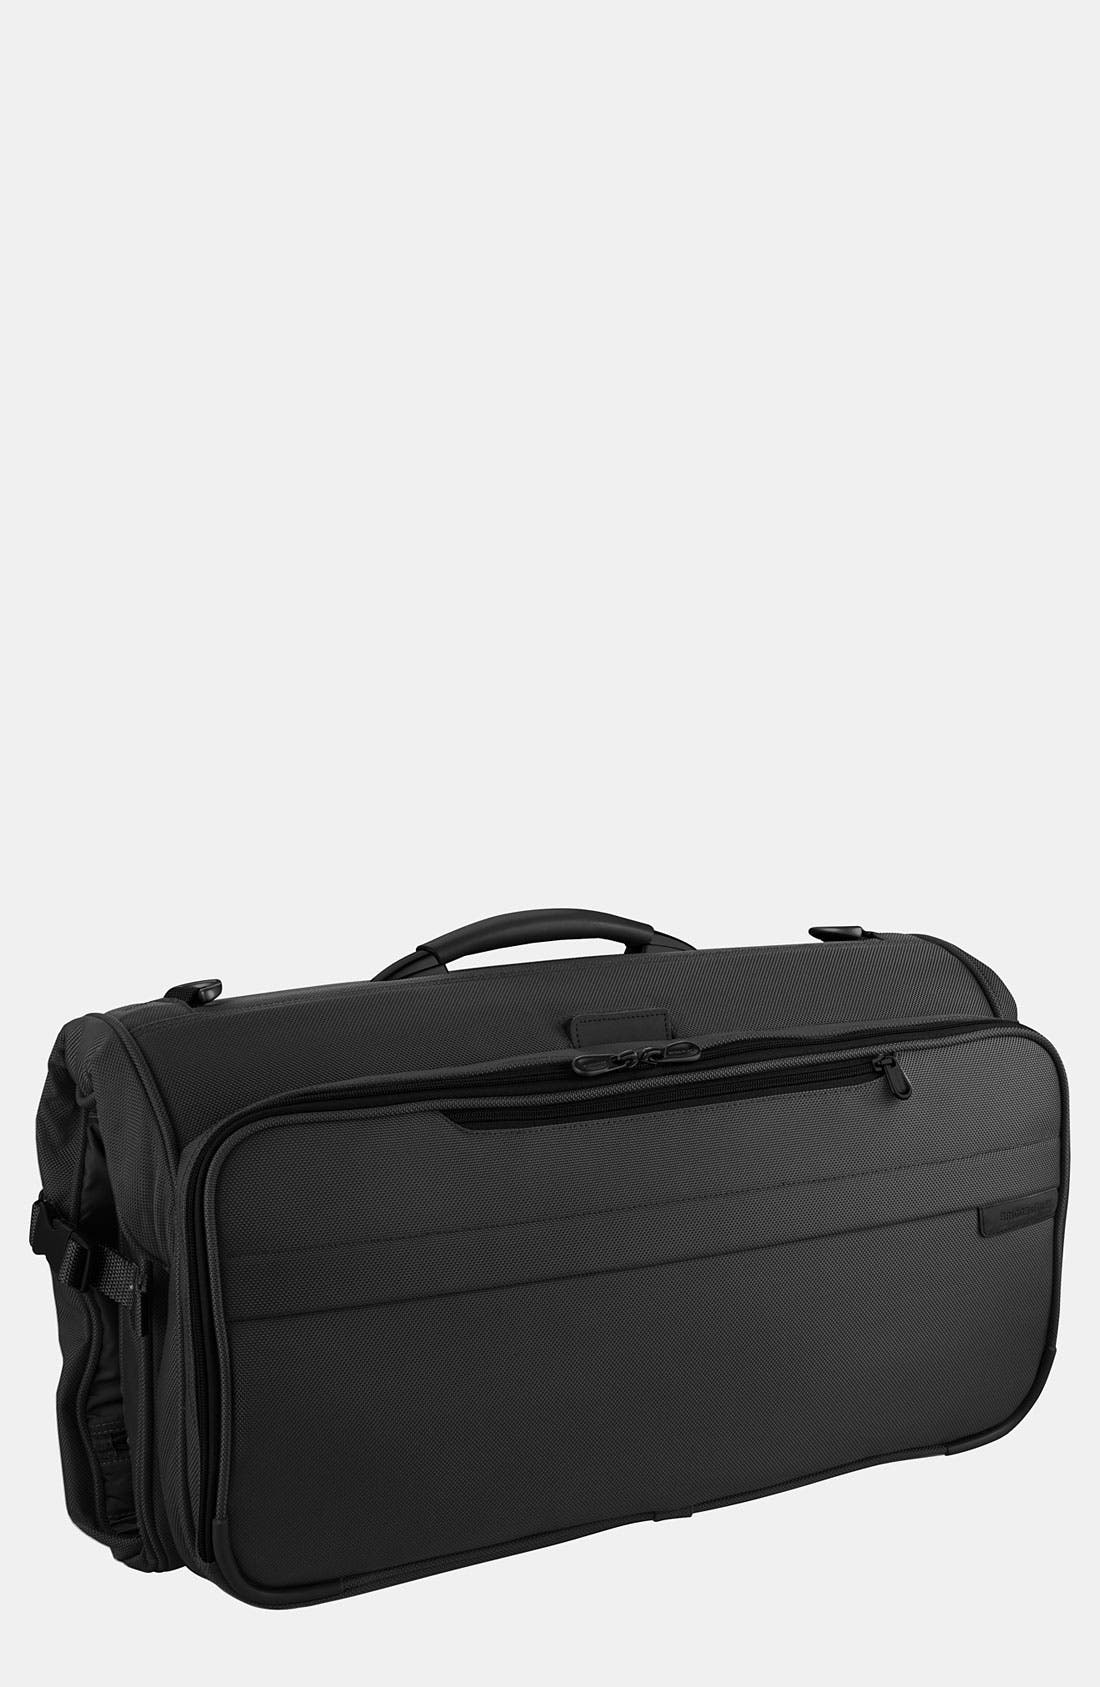 Baseline - Compact Garment Bag,                             Main thumbnail 1, color,                             Black